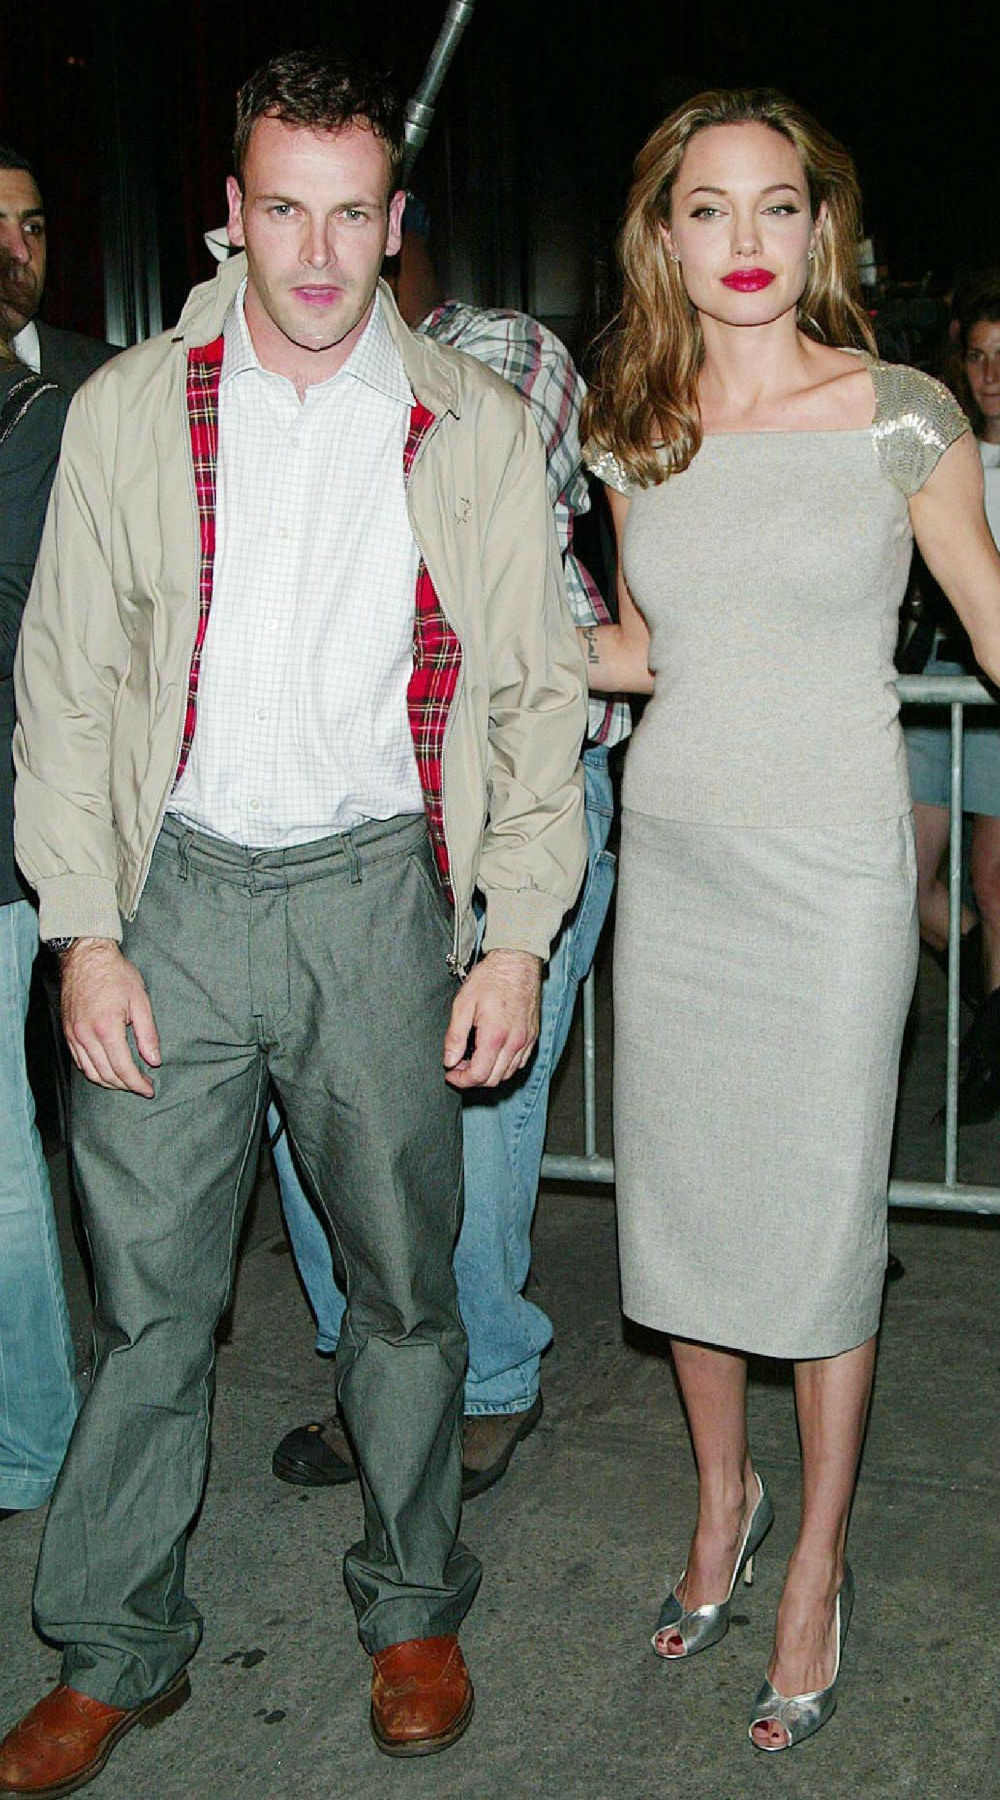 I M Very Protective Of My Friends Angelina Jolie S Ex Husband Jonny Lee Miller Admits To Still Being Defensive The Actress Entertainmentwise